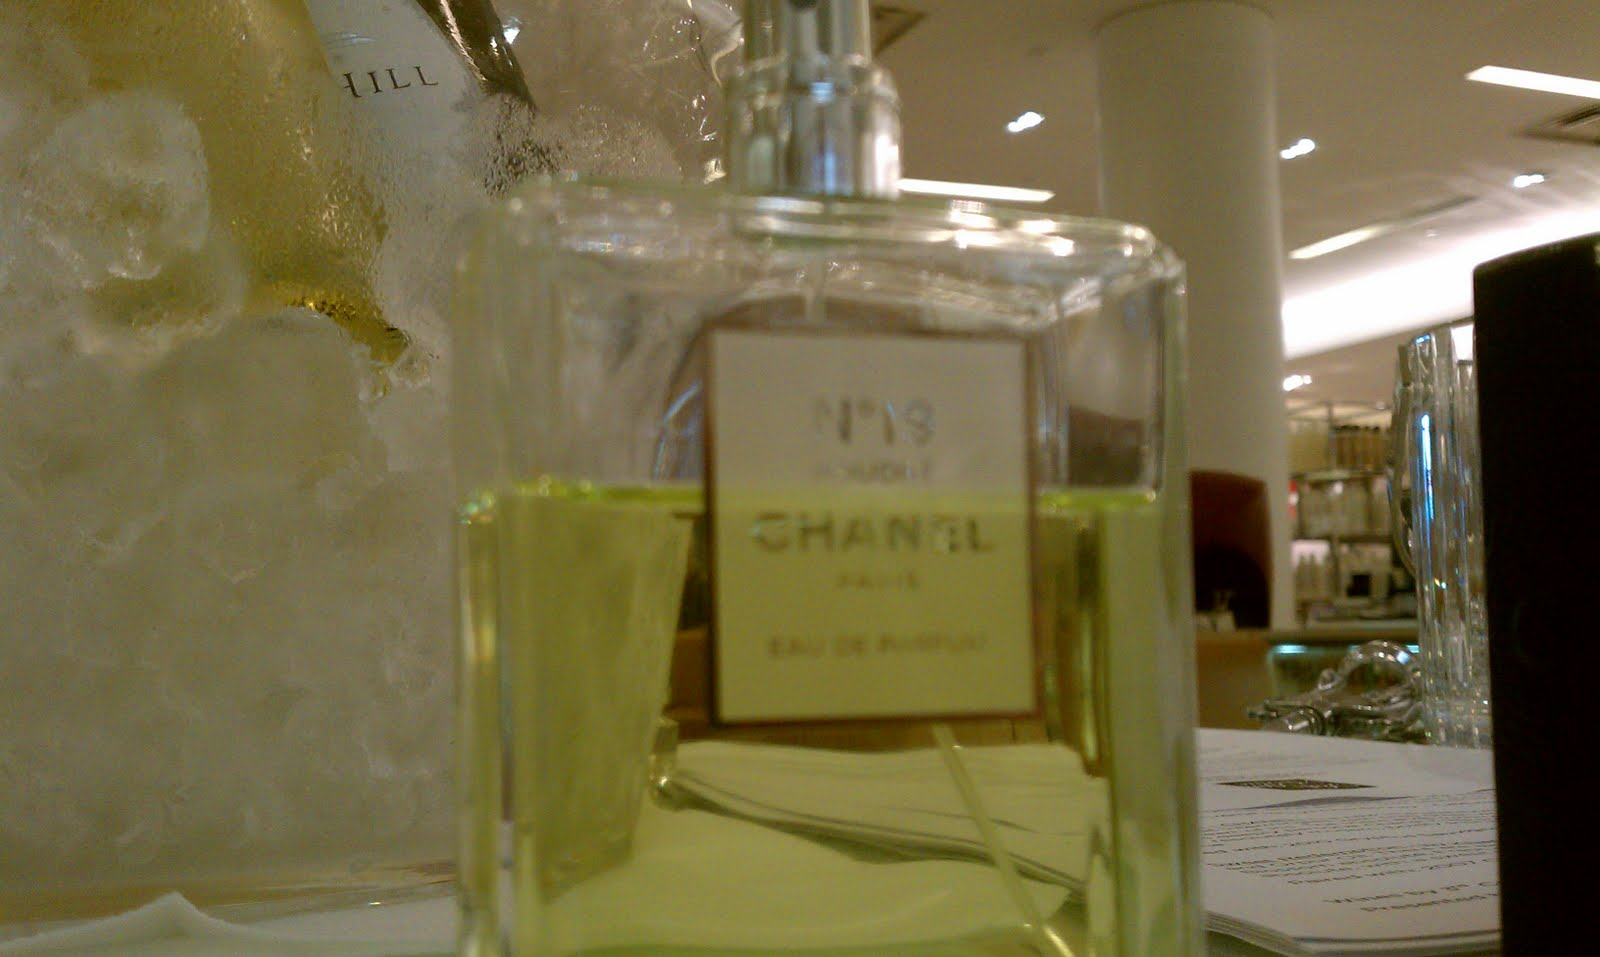 chanel 19 poudre. 19 (released on chanel\u0027s actual birthday) is floral intermingled with crisp green woods, and a touch of powder. i paired it 2010 gryphus sauvignon chanel poudre